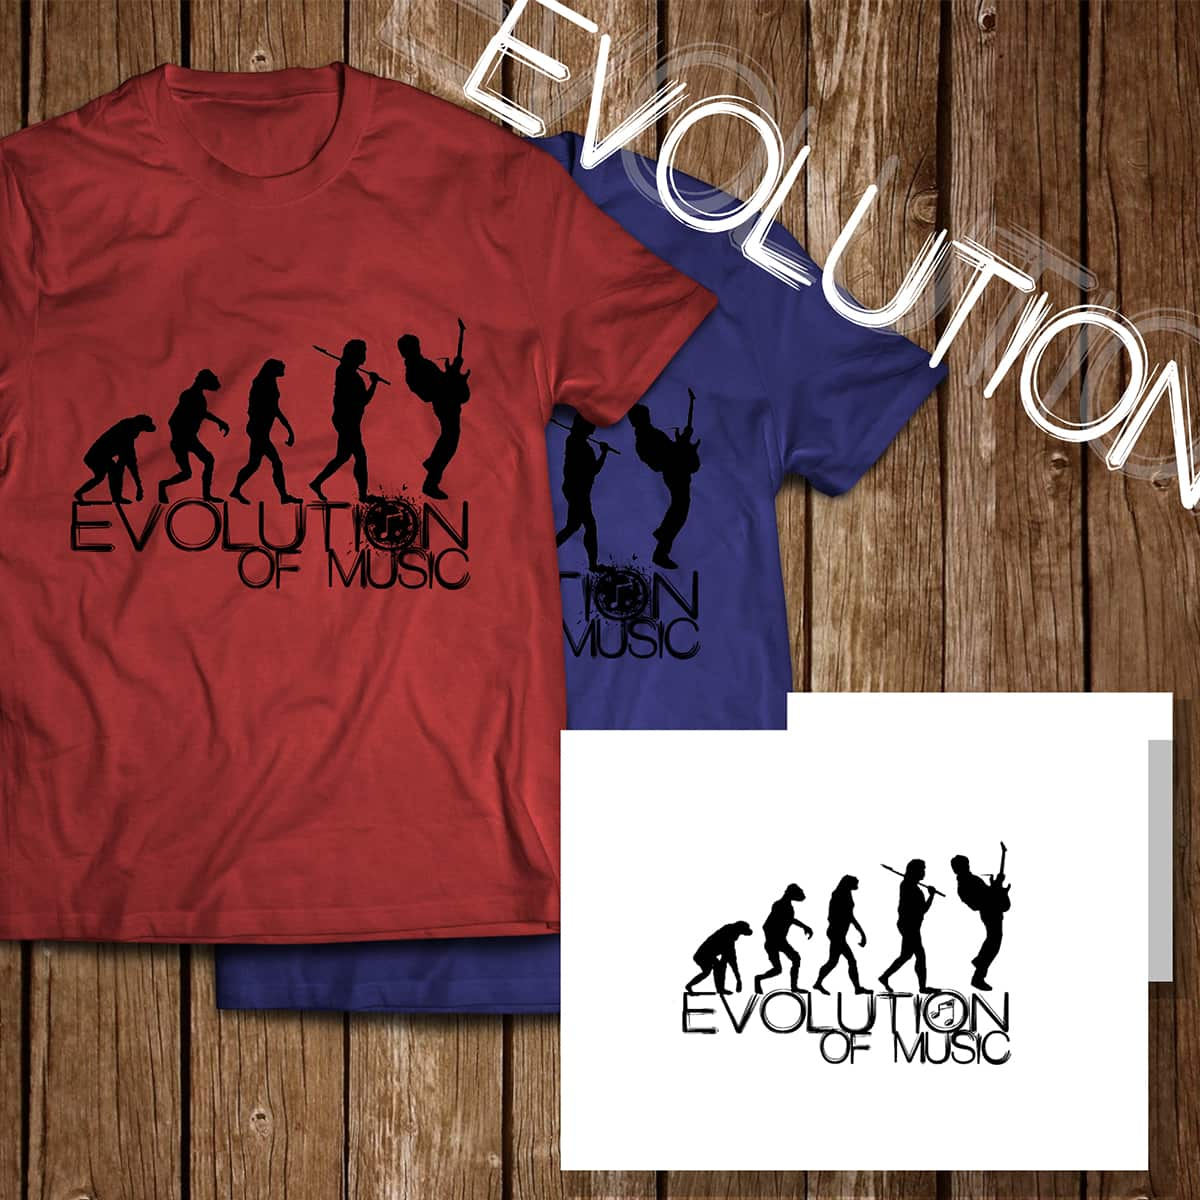 Evolution of Music by Skyzunlimited on Threadless